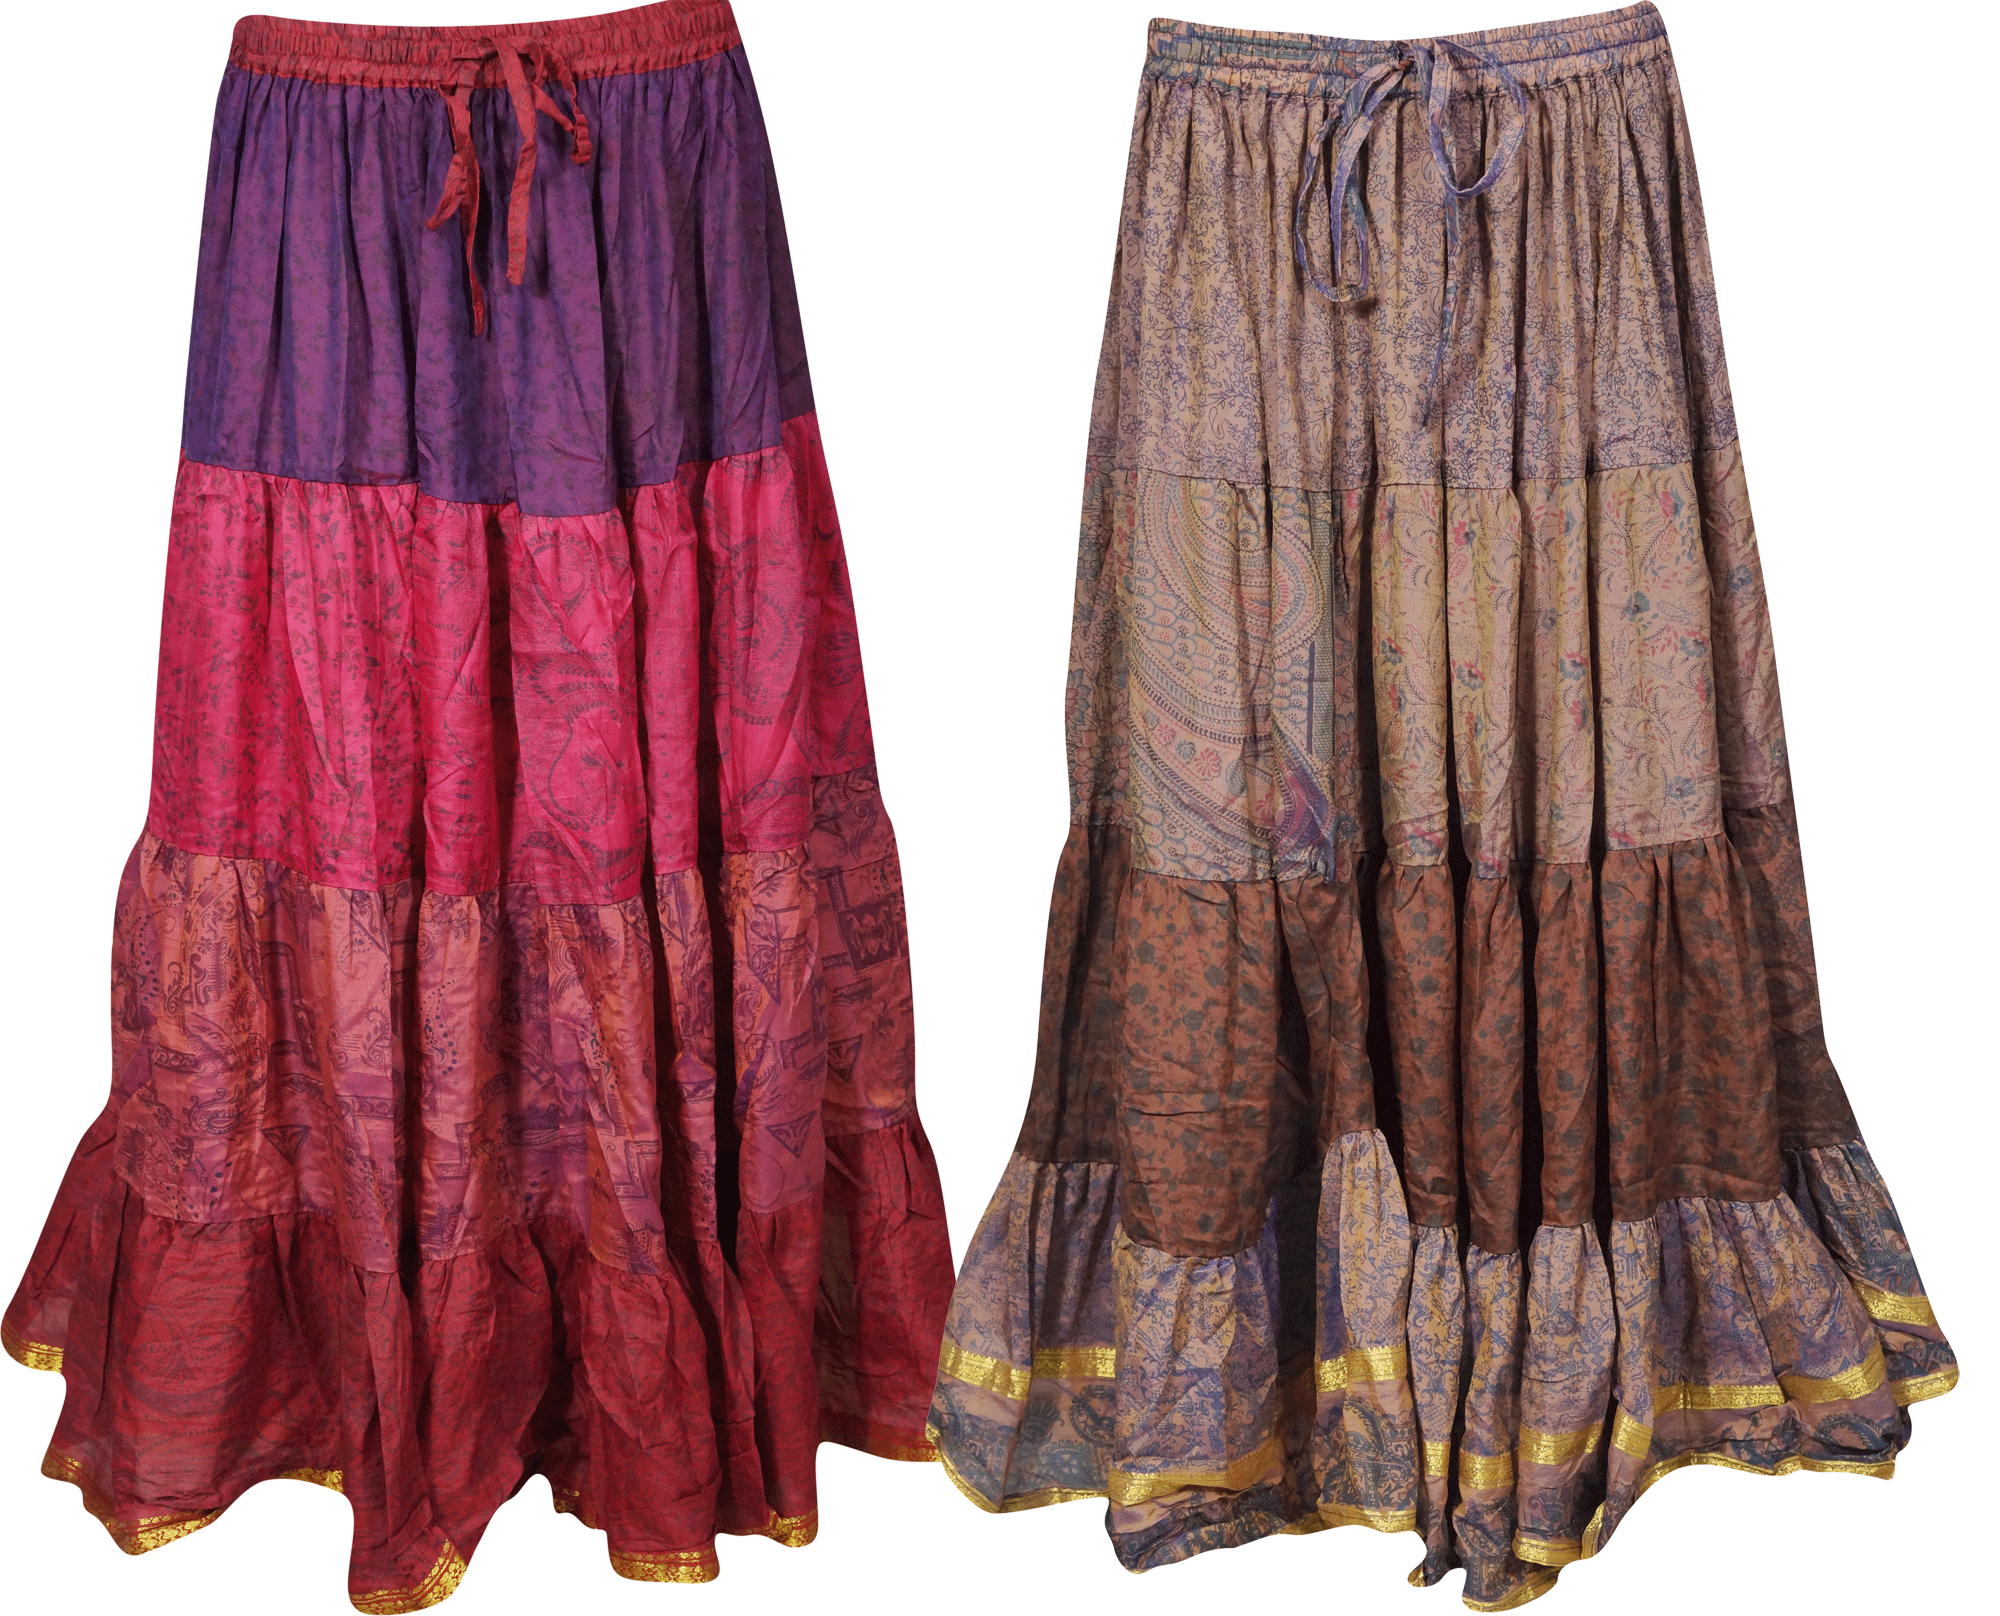 Mogul Interior - Mogul Lot Of 2 Pcs Womens Gypsy Skirts Vintage Silk